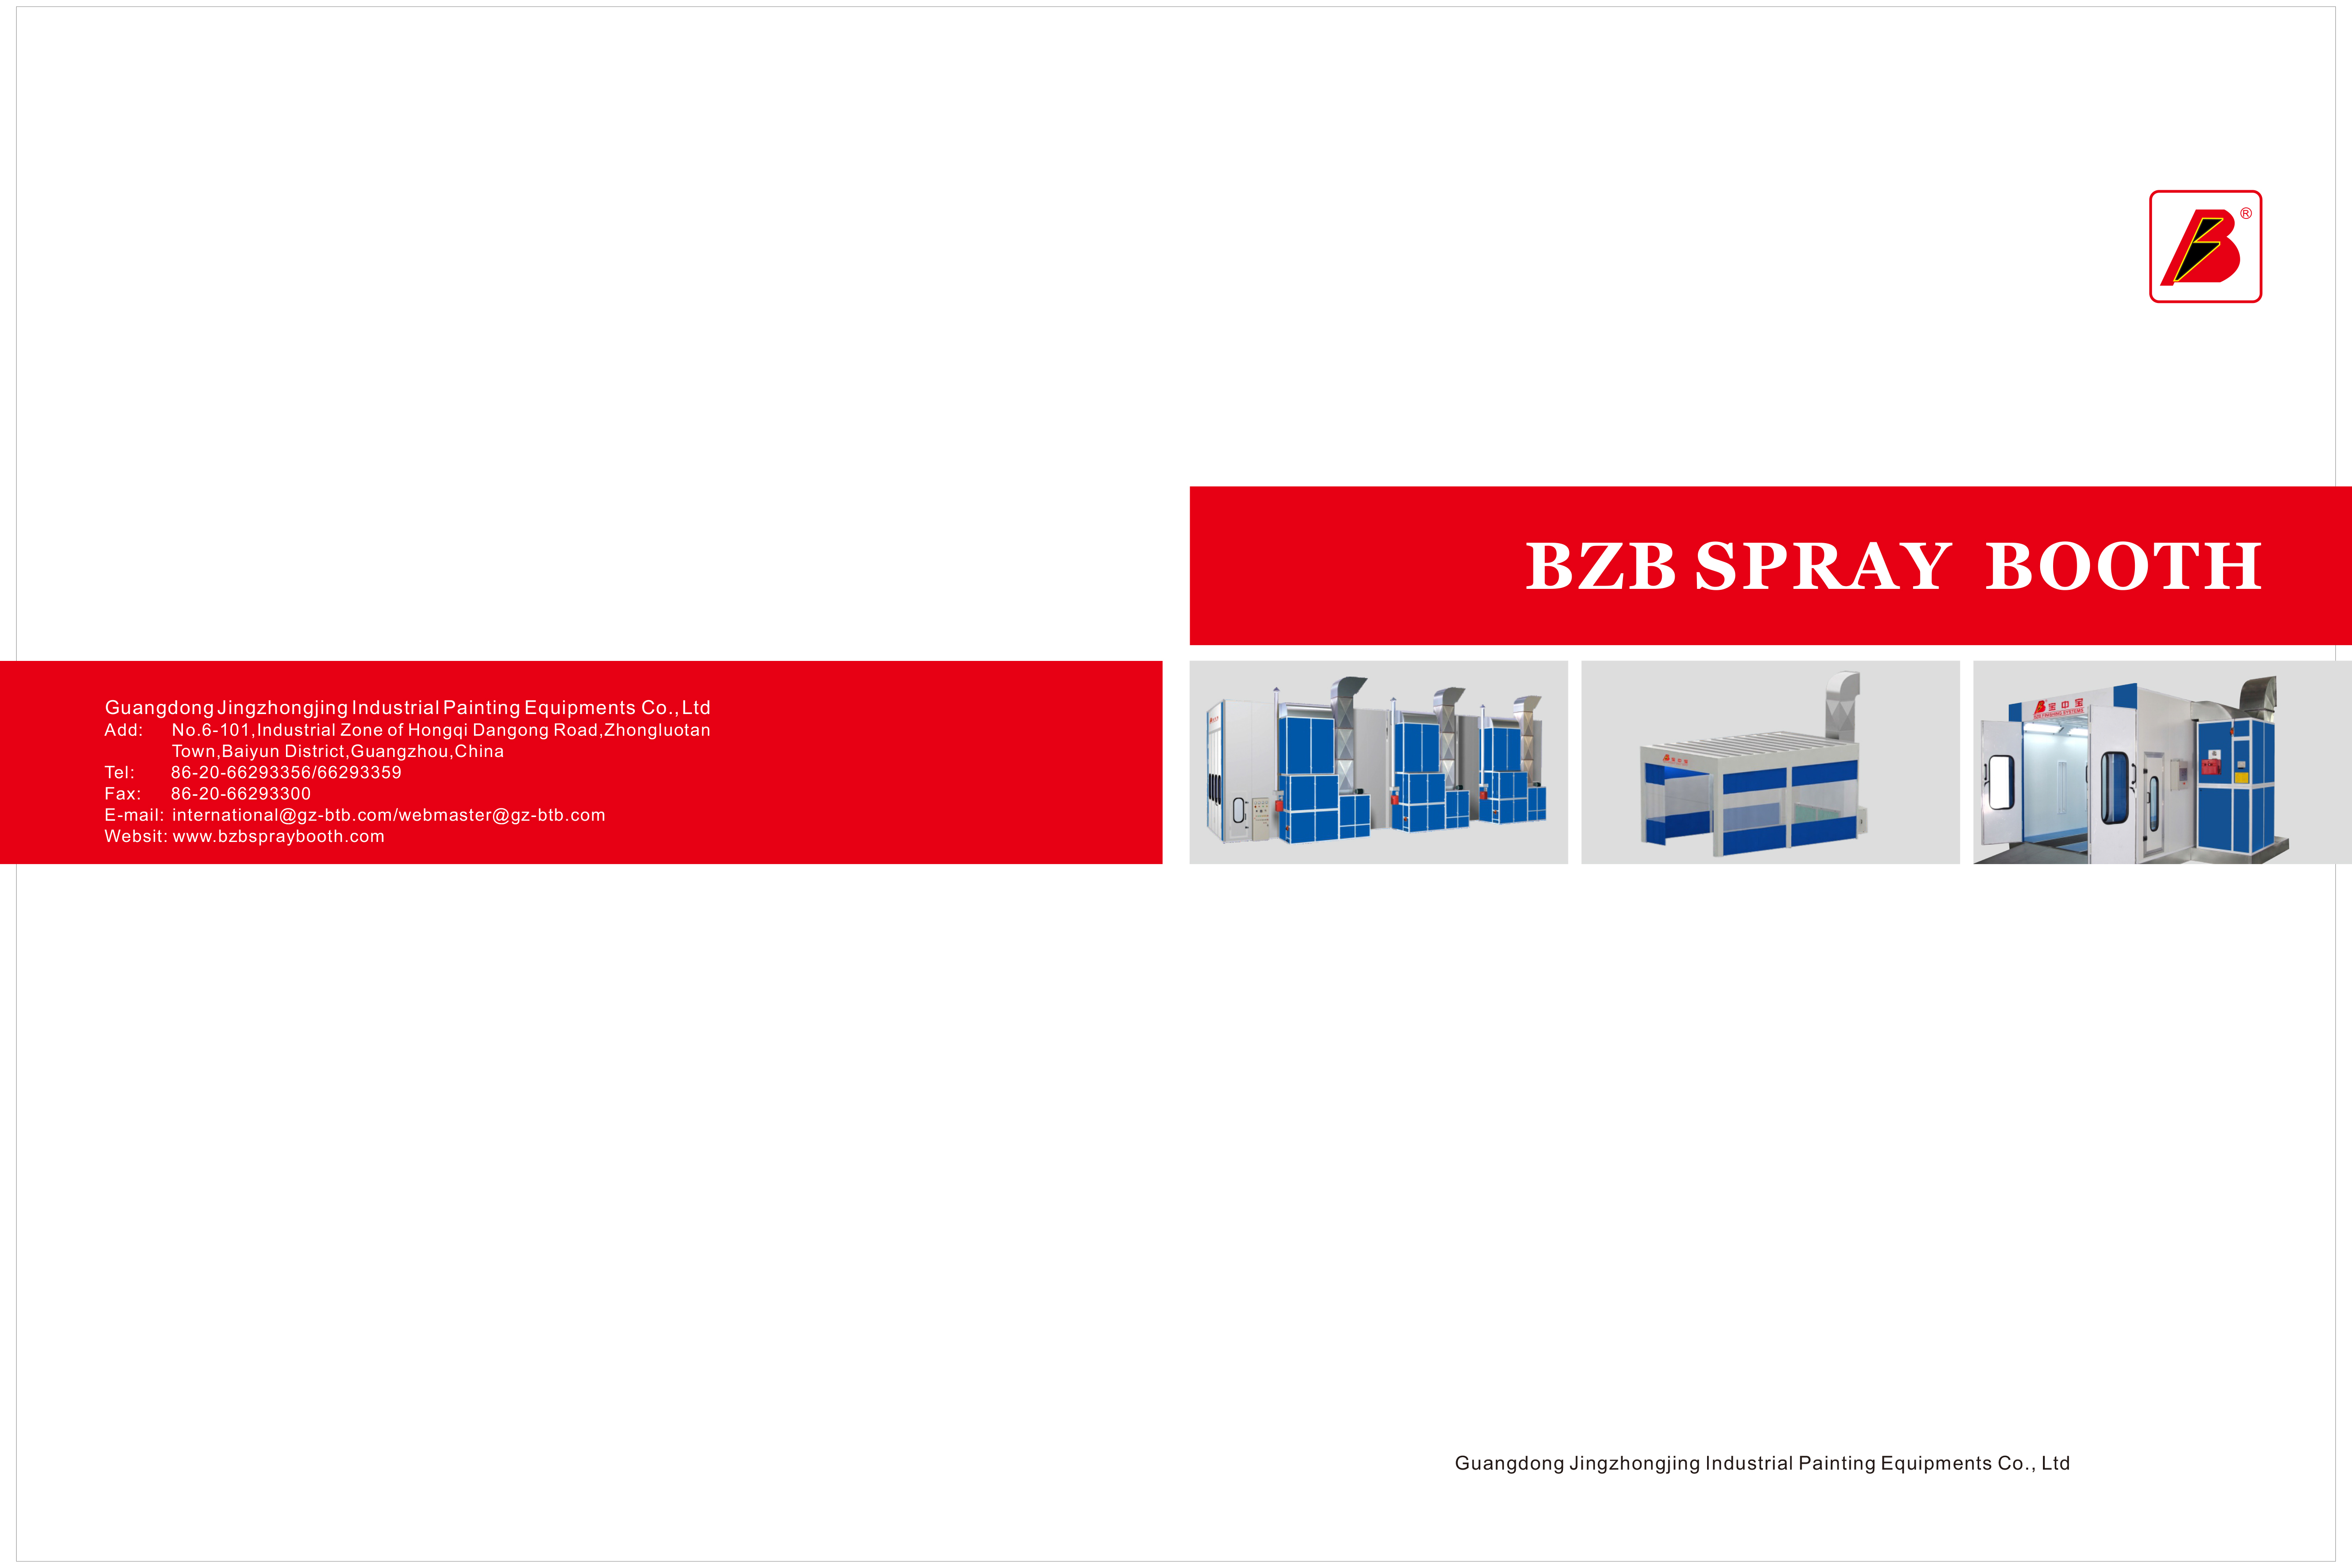 BZB Spray Booth Catalog